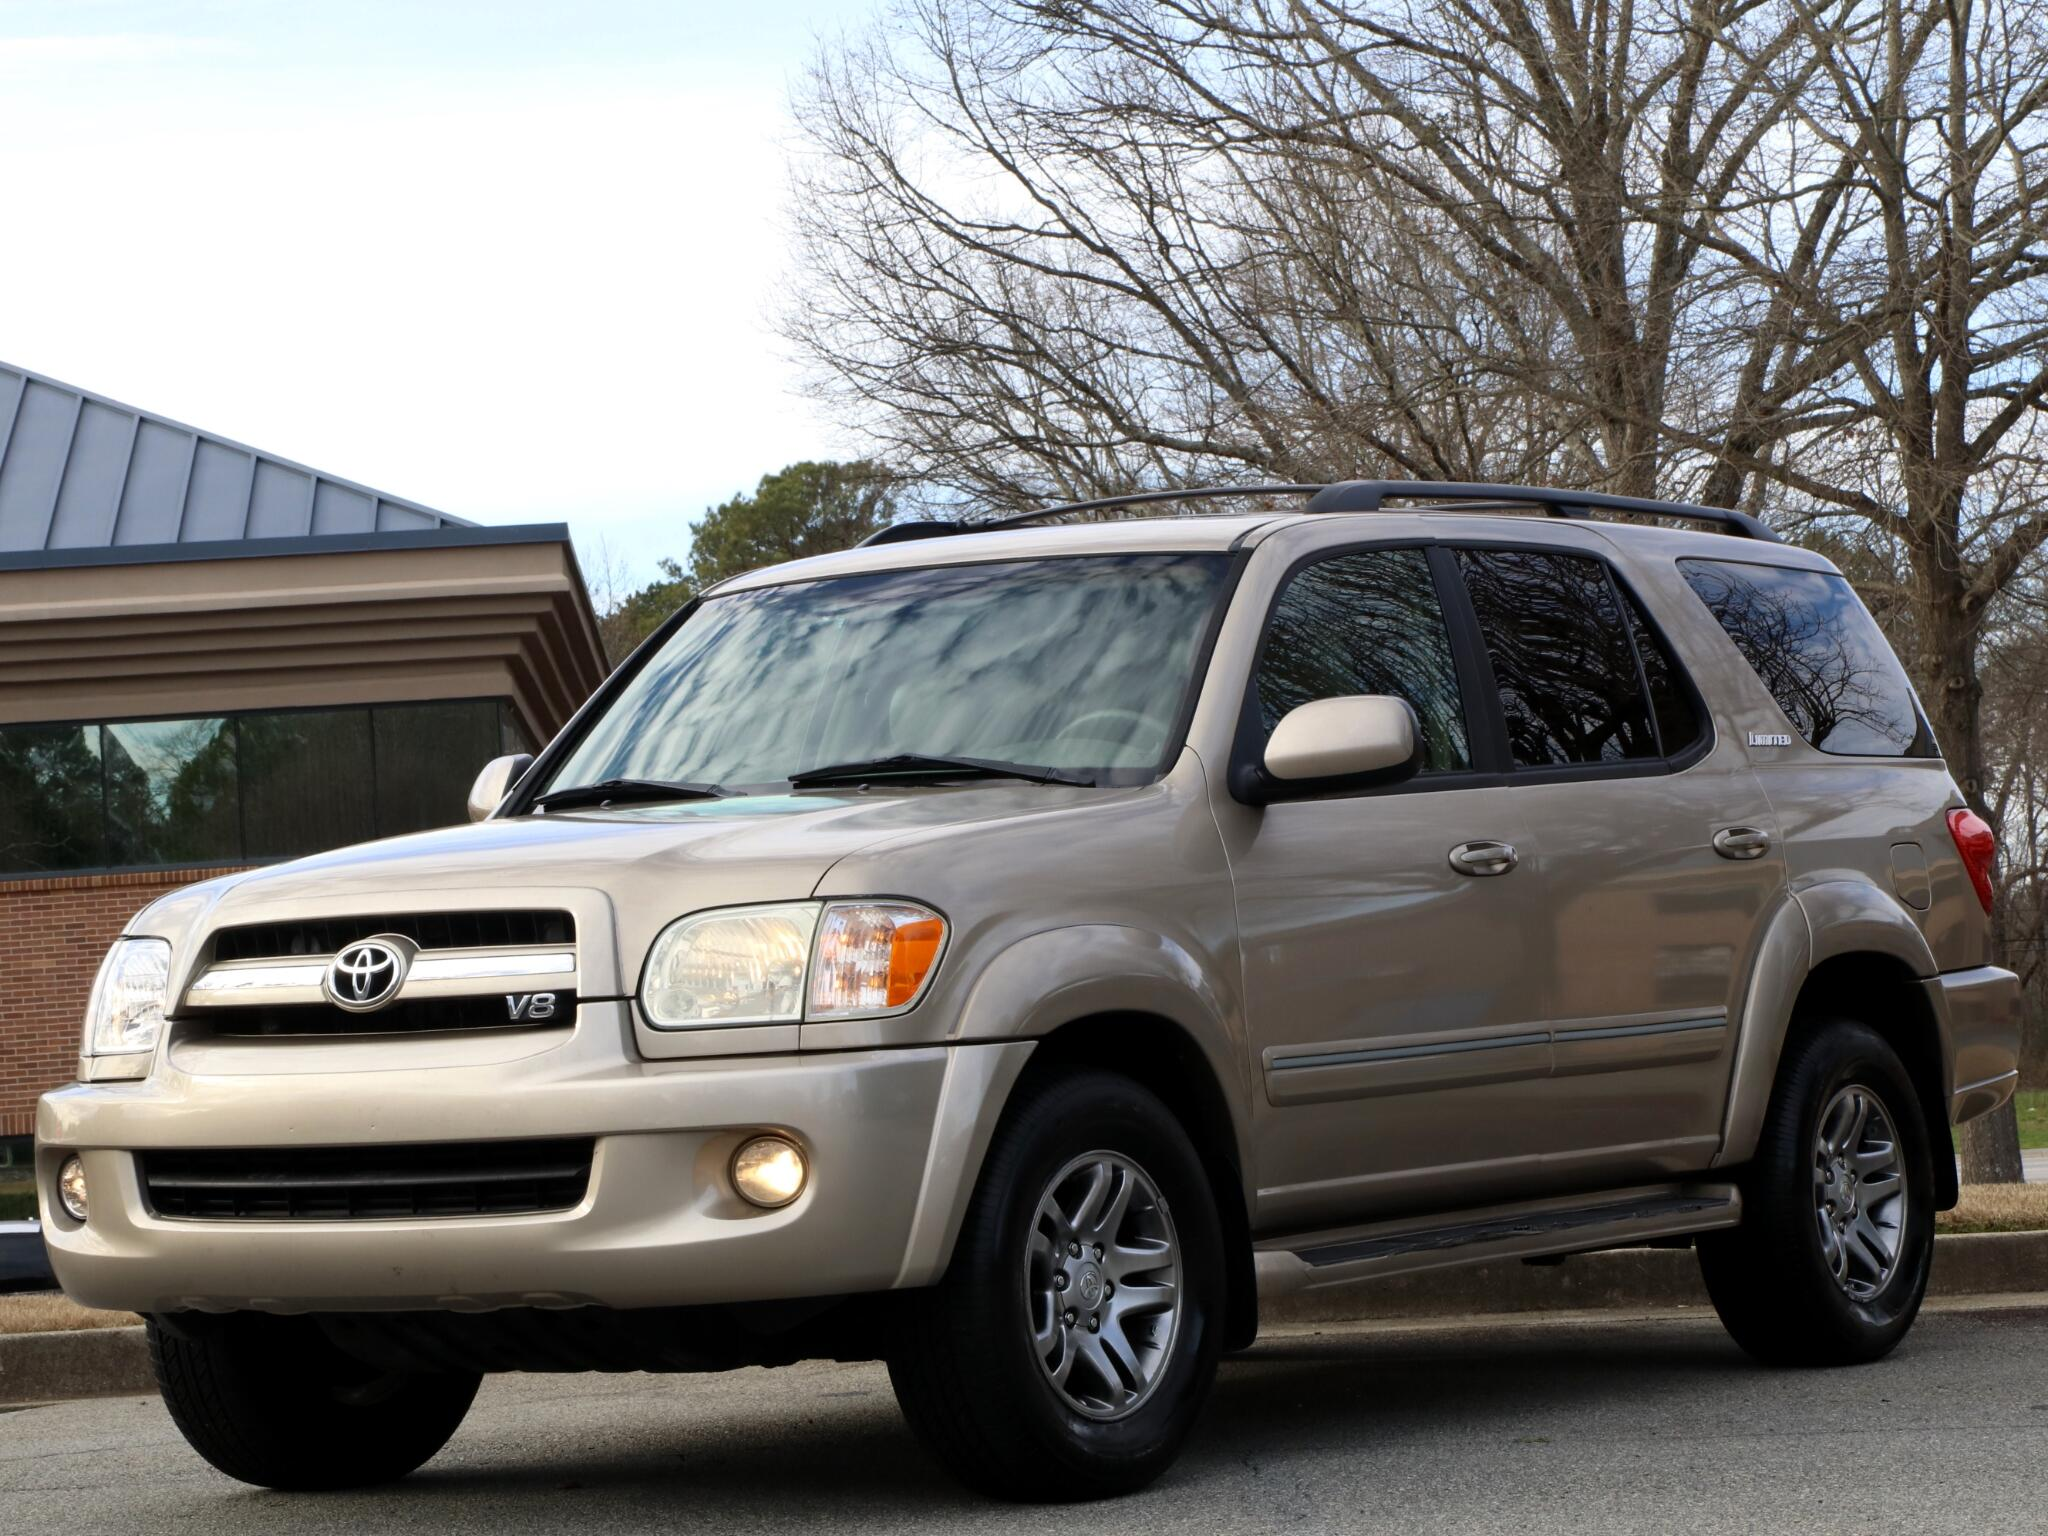 Toyota Sequoia 2006 for Sale in Duluth, GA